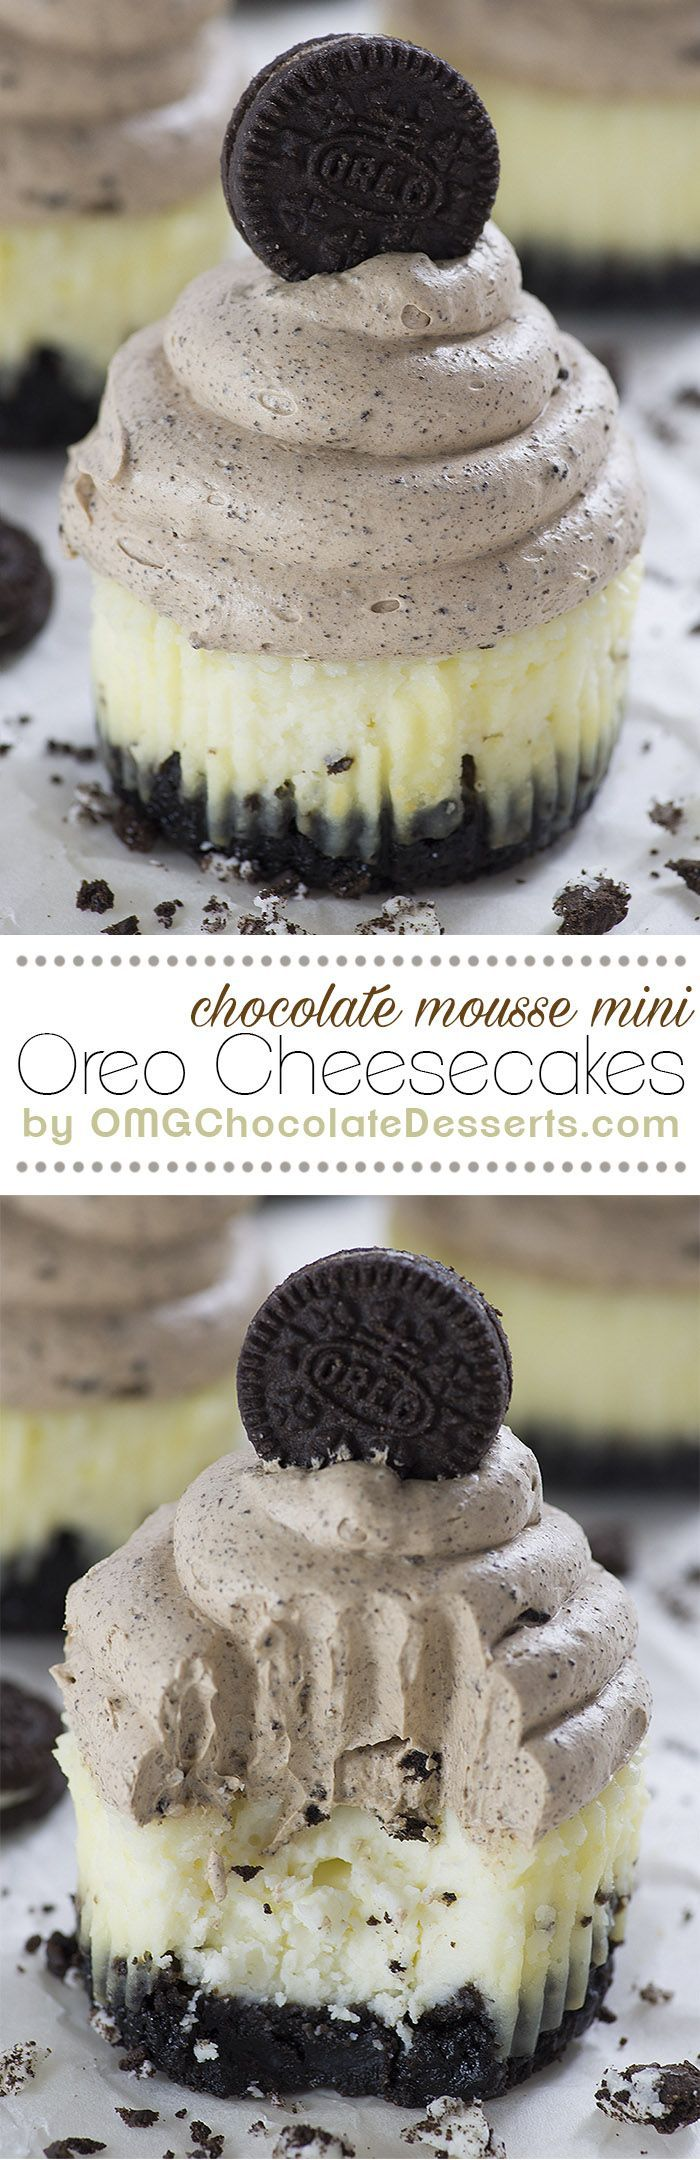 Mini Cheesecakes with thick Oreo cookie crust topped with light and creamy chocolate mousse - Chocolate Mousse Mini Oreo Cheesecakes.